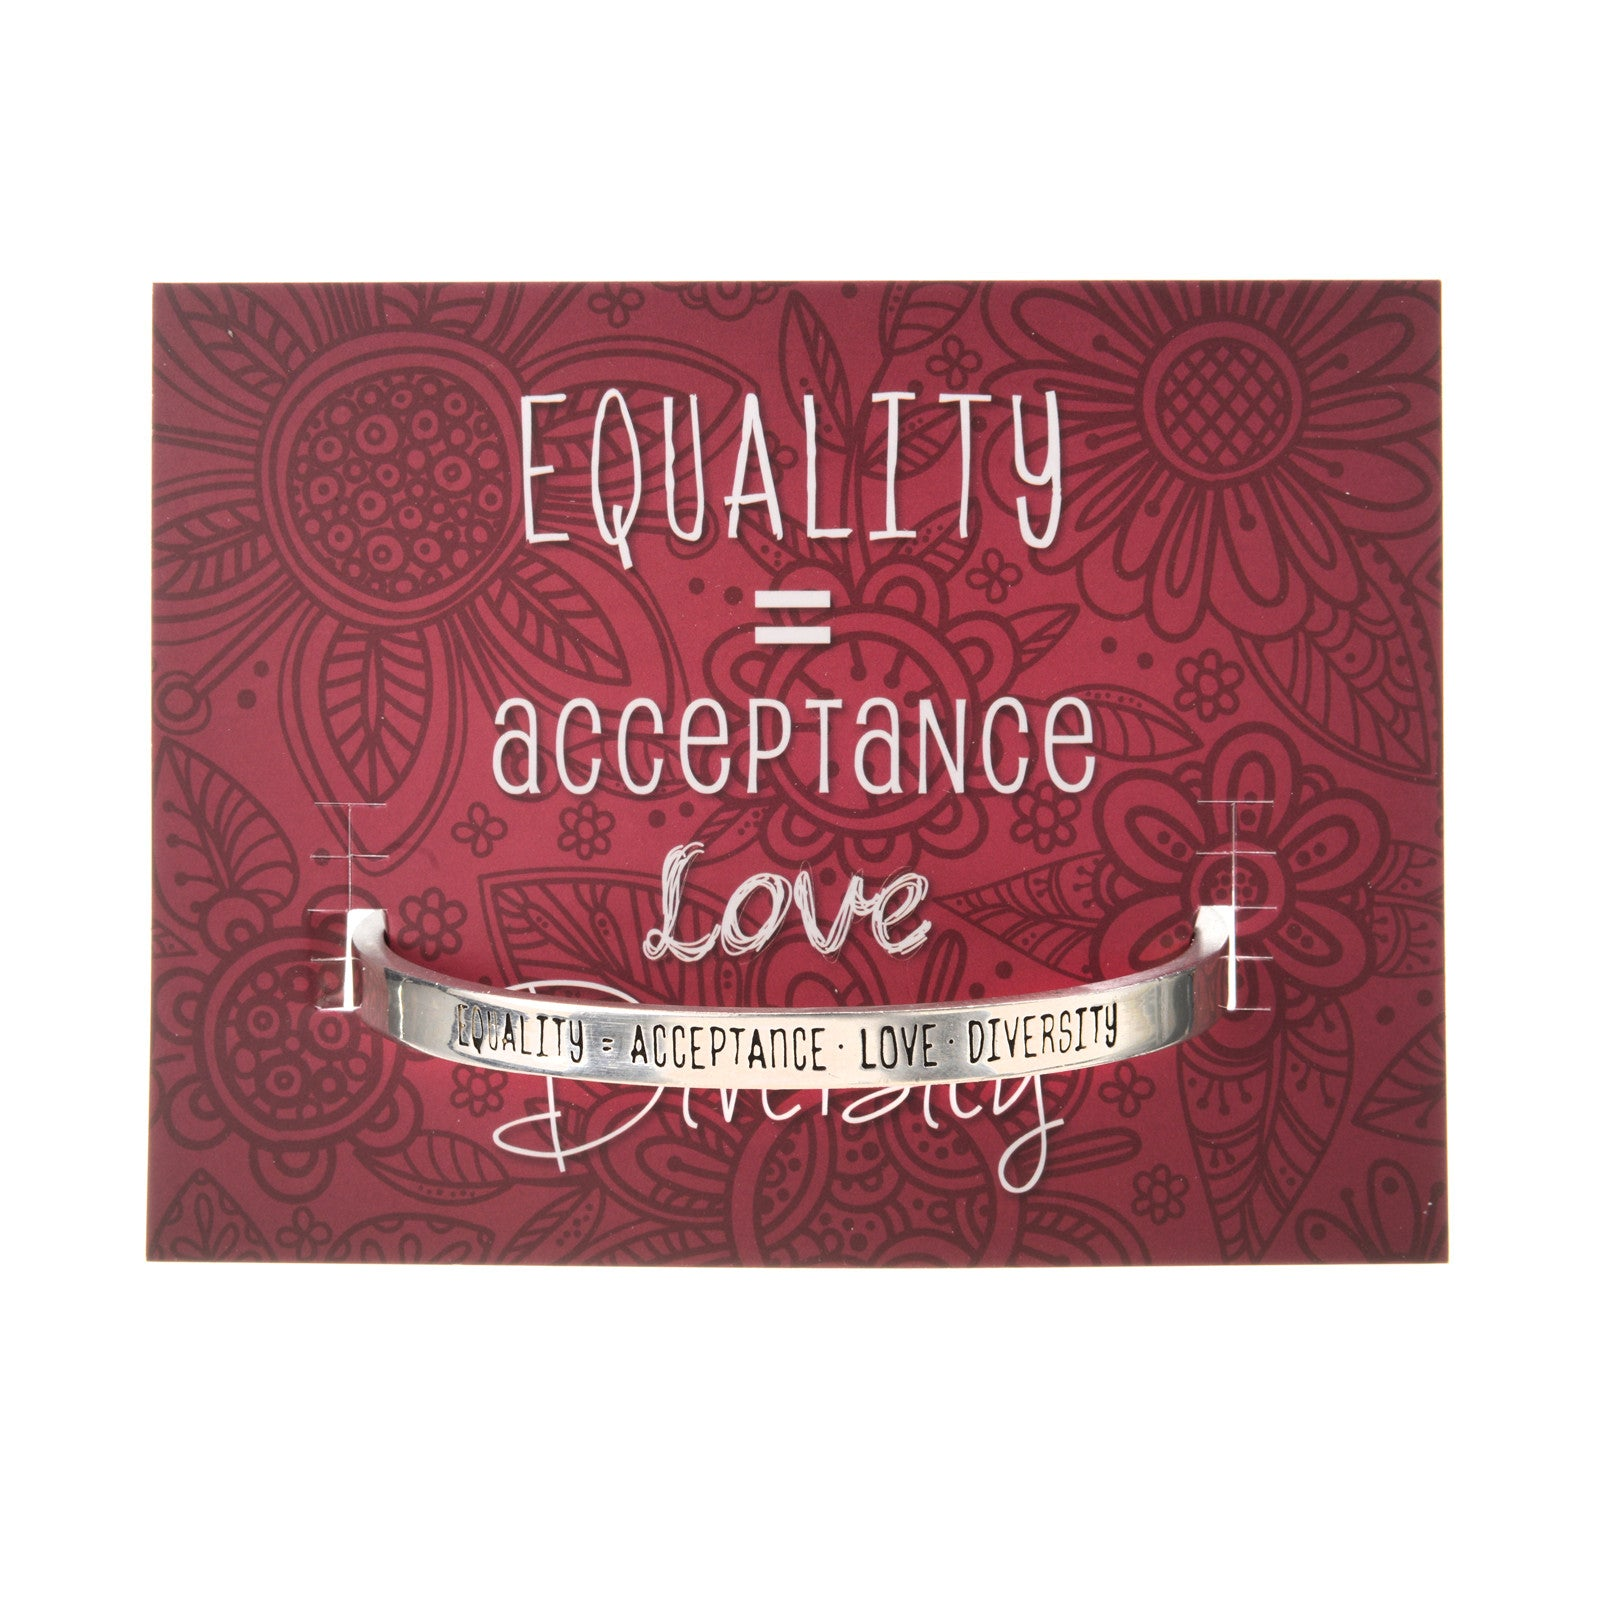 Equality = Acceptance, Love & Diversity Quotable Cuff Bracelet - Whitney Howard Designs